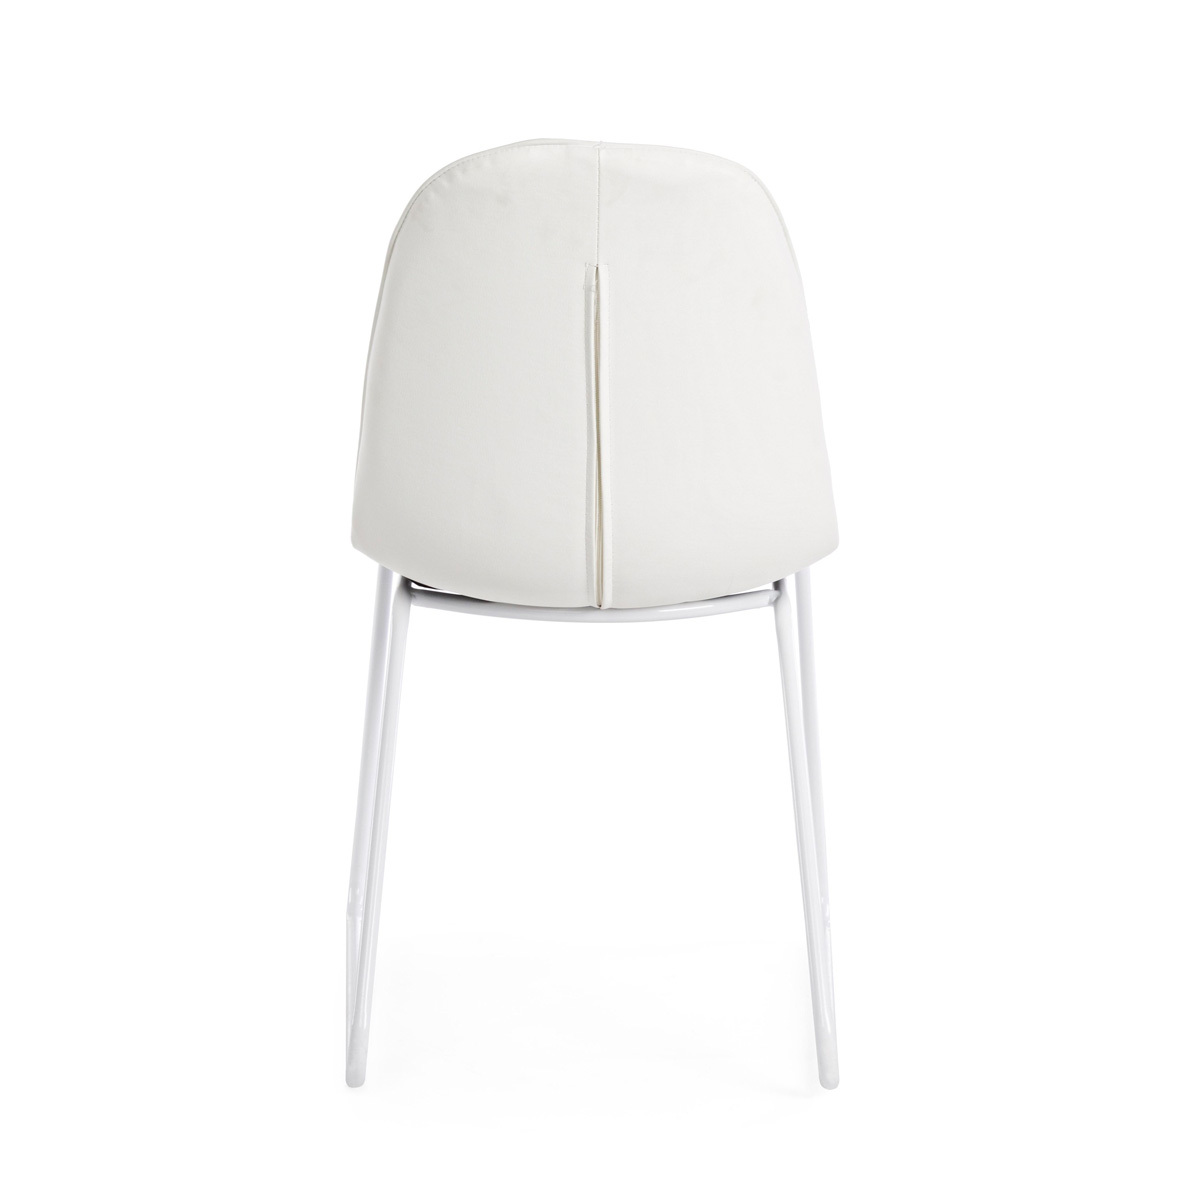 Photos 3: Bizzotto Chair in metal and eco-leather - white 0731653